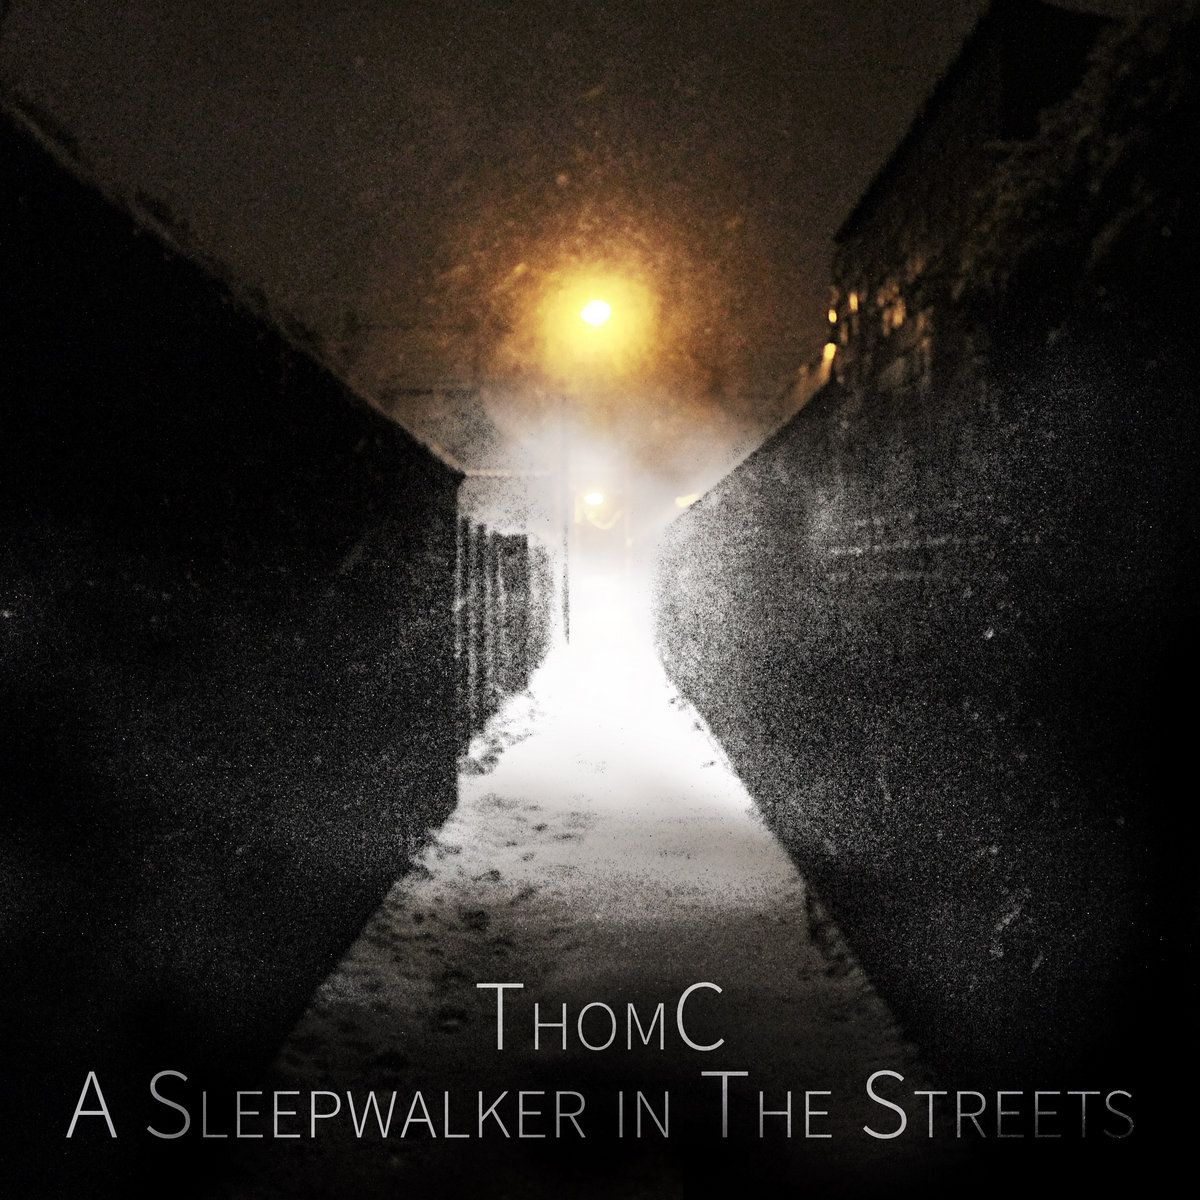 🎵  'A sleepwalker in the streets' - New release from ThomC